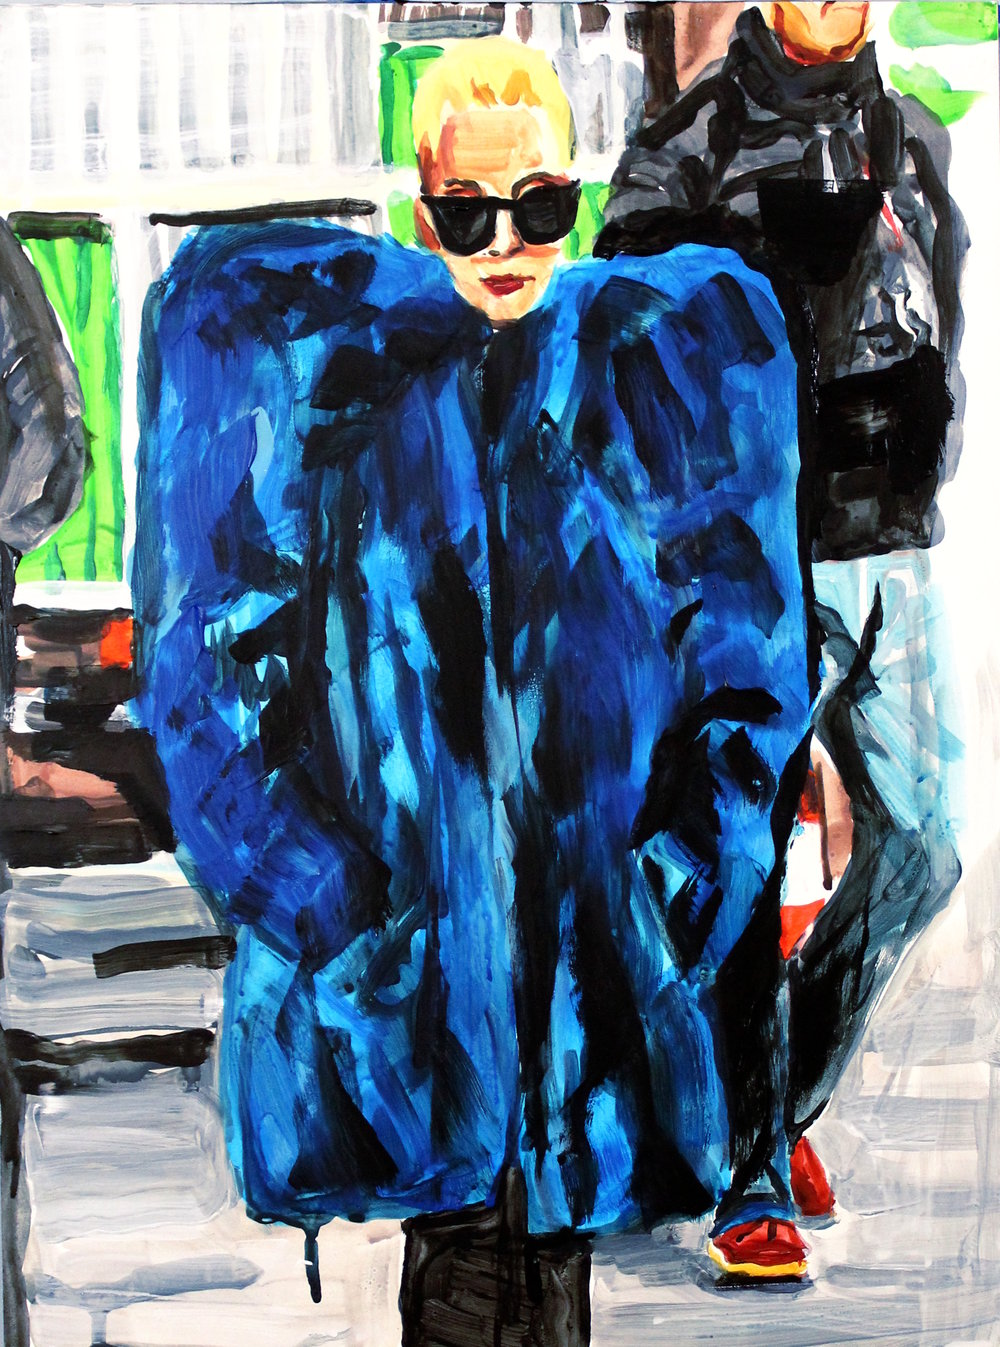 Laura Collins Lady Gaga in Blue Fur 12x16.JPG